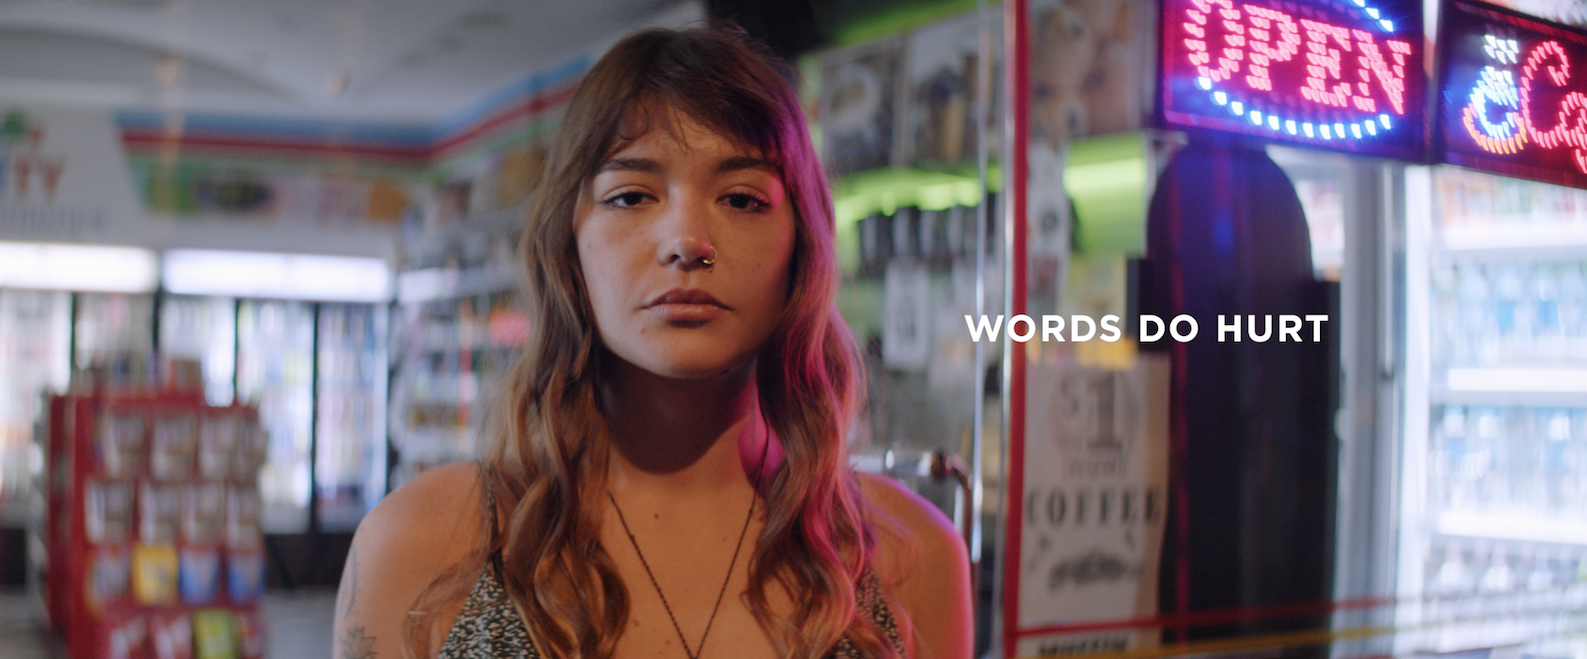 ANZ challenges hurtful homophobic language with #LoveSpeech campaign via TBWA\Melbourne